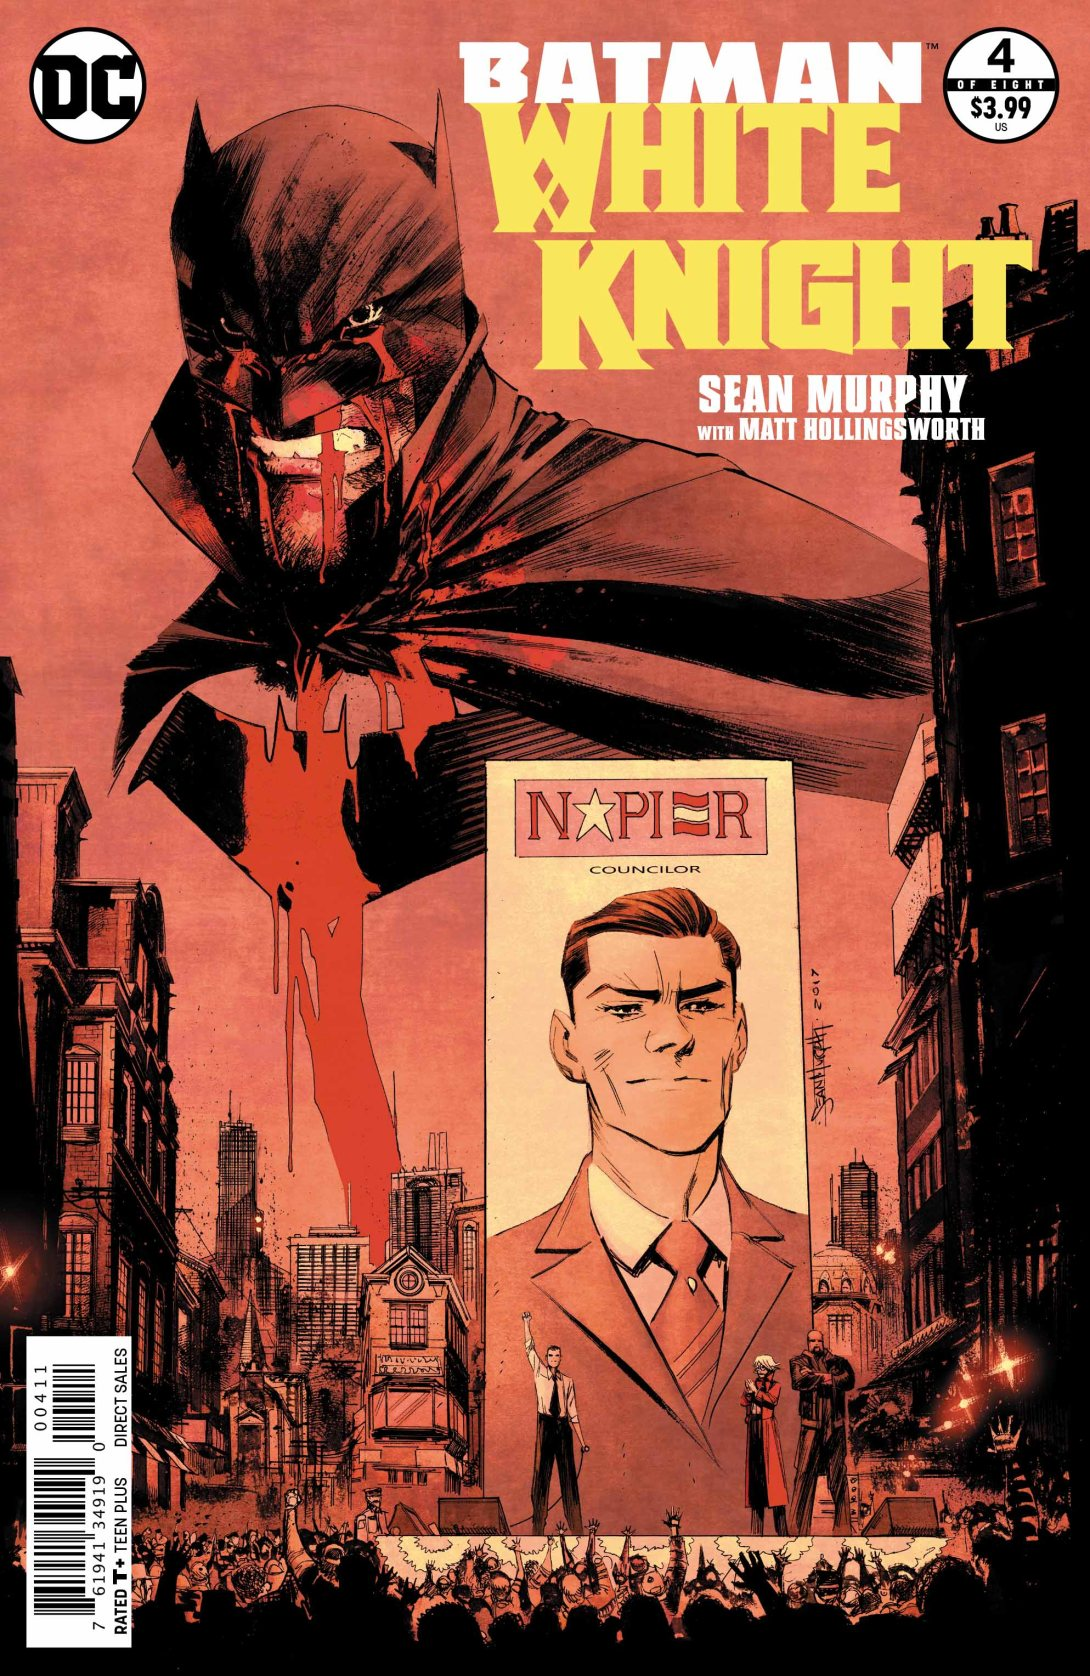 Batman White Knight #4 - DC Comics News